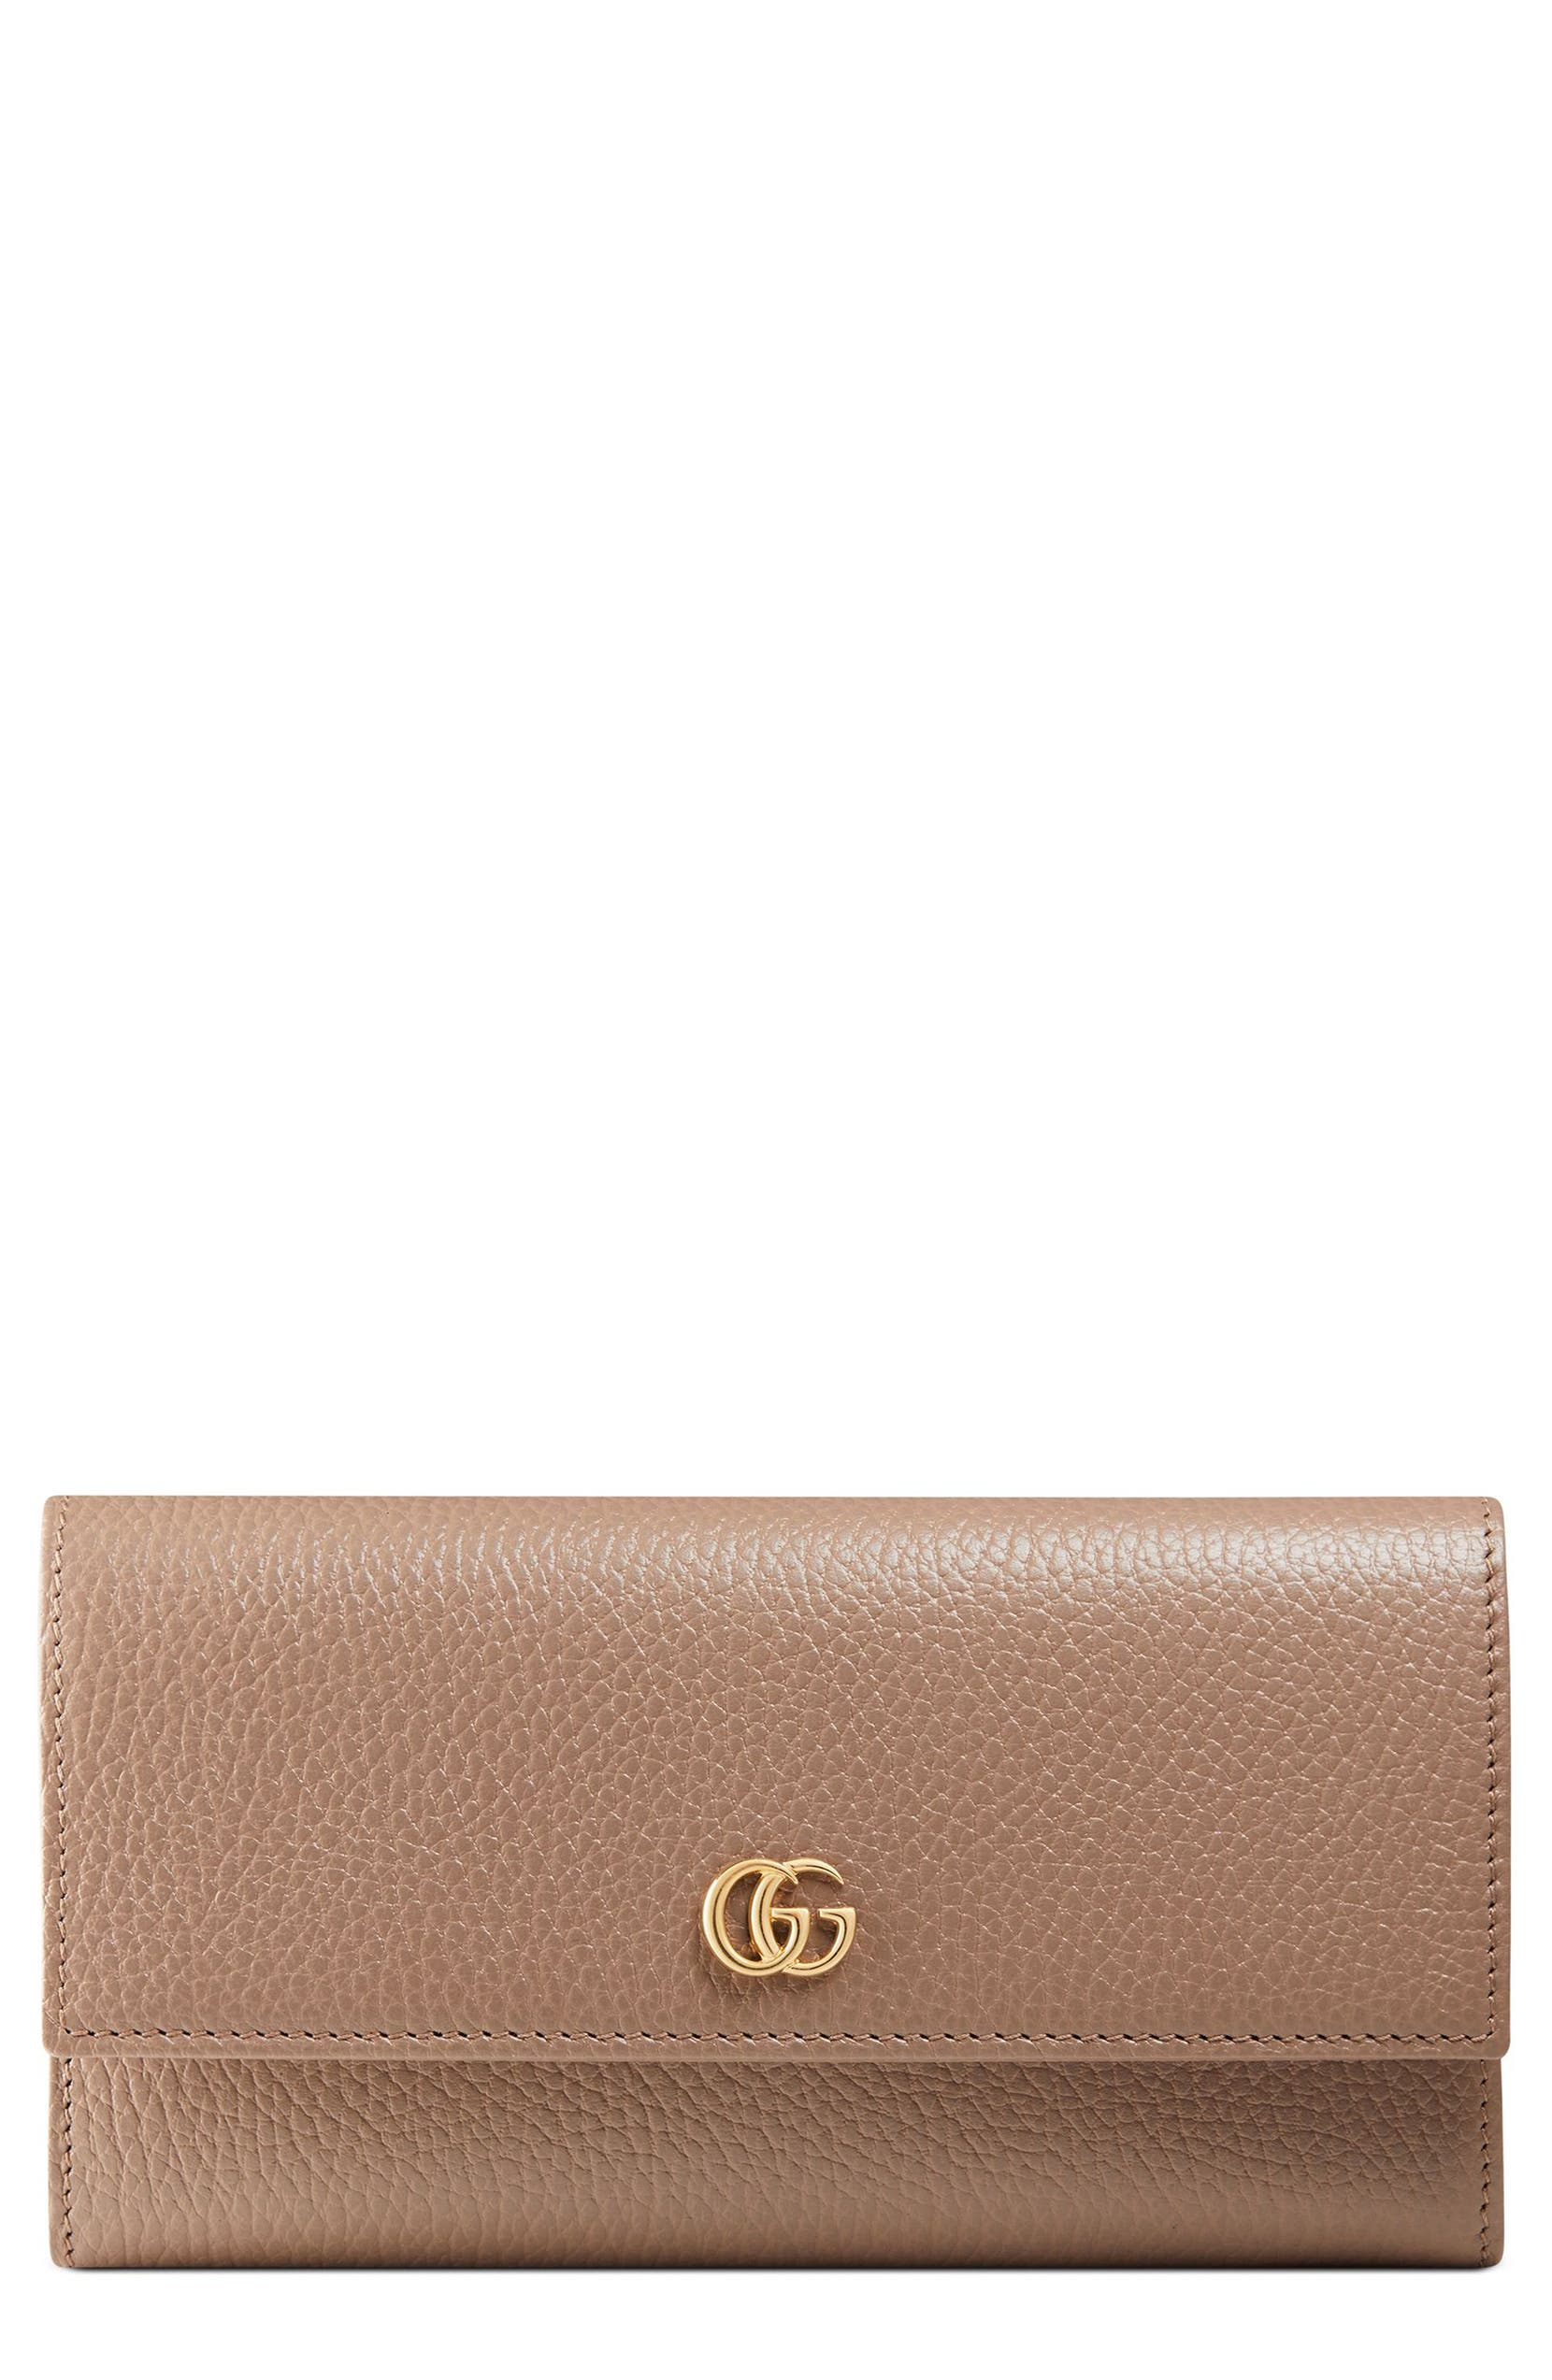 4cebc8cc5cdb Gucci Petite Marmont Leather Continental Wallet | Nordstrom